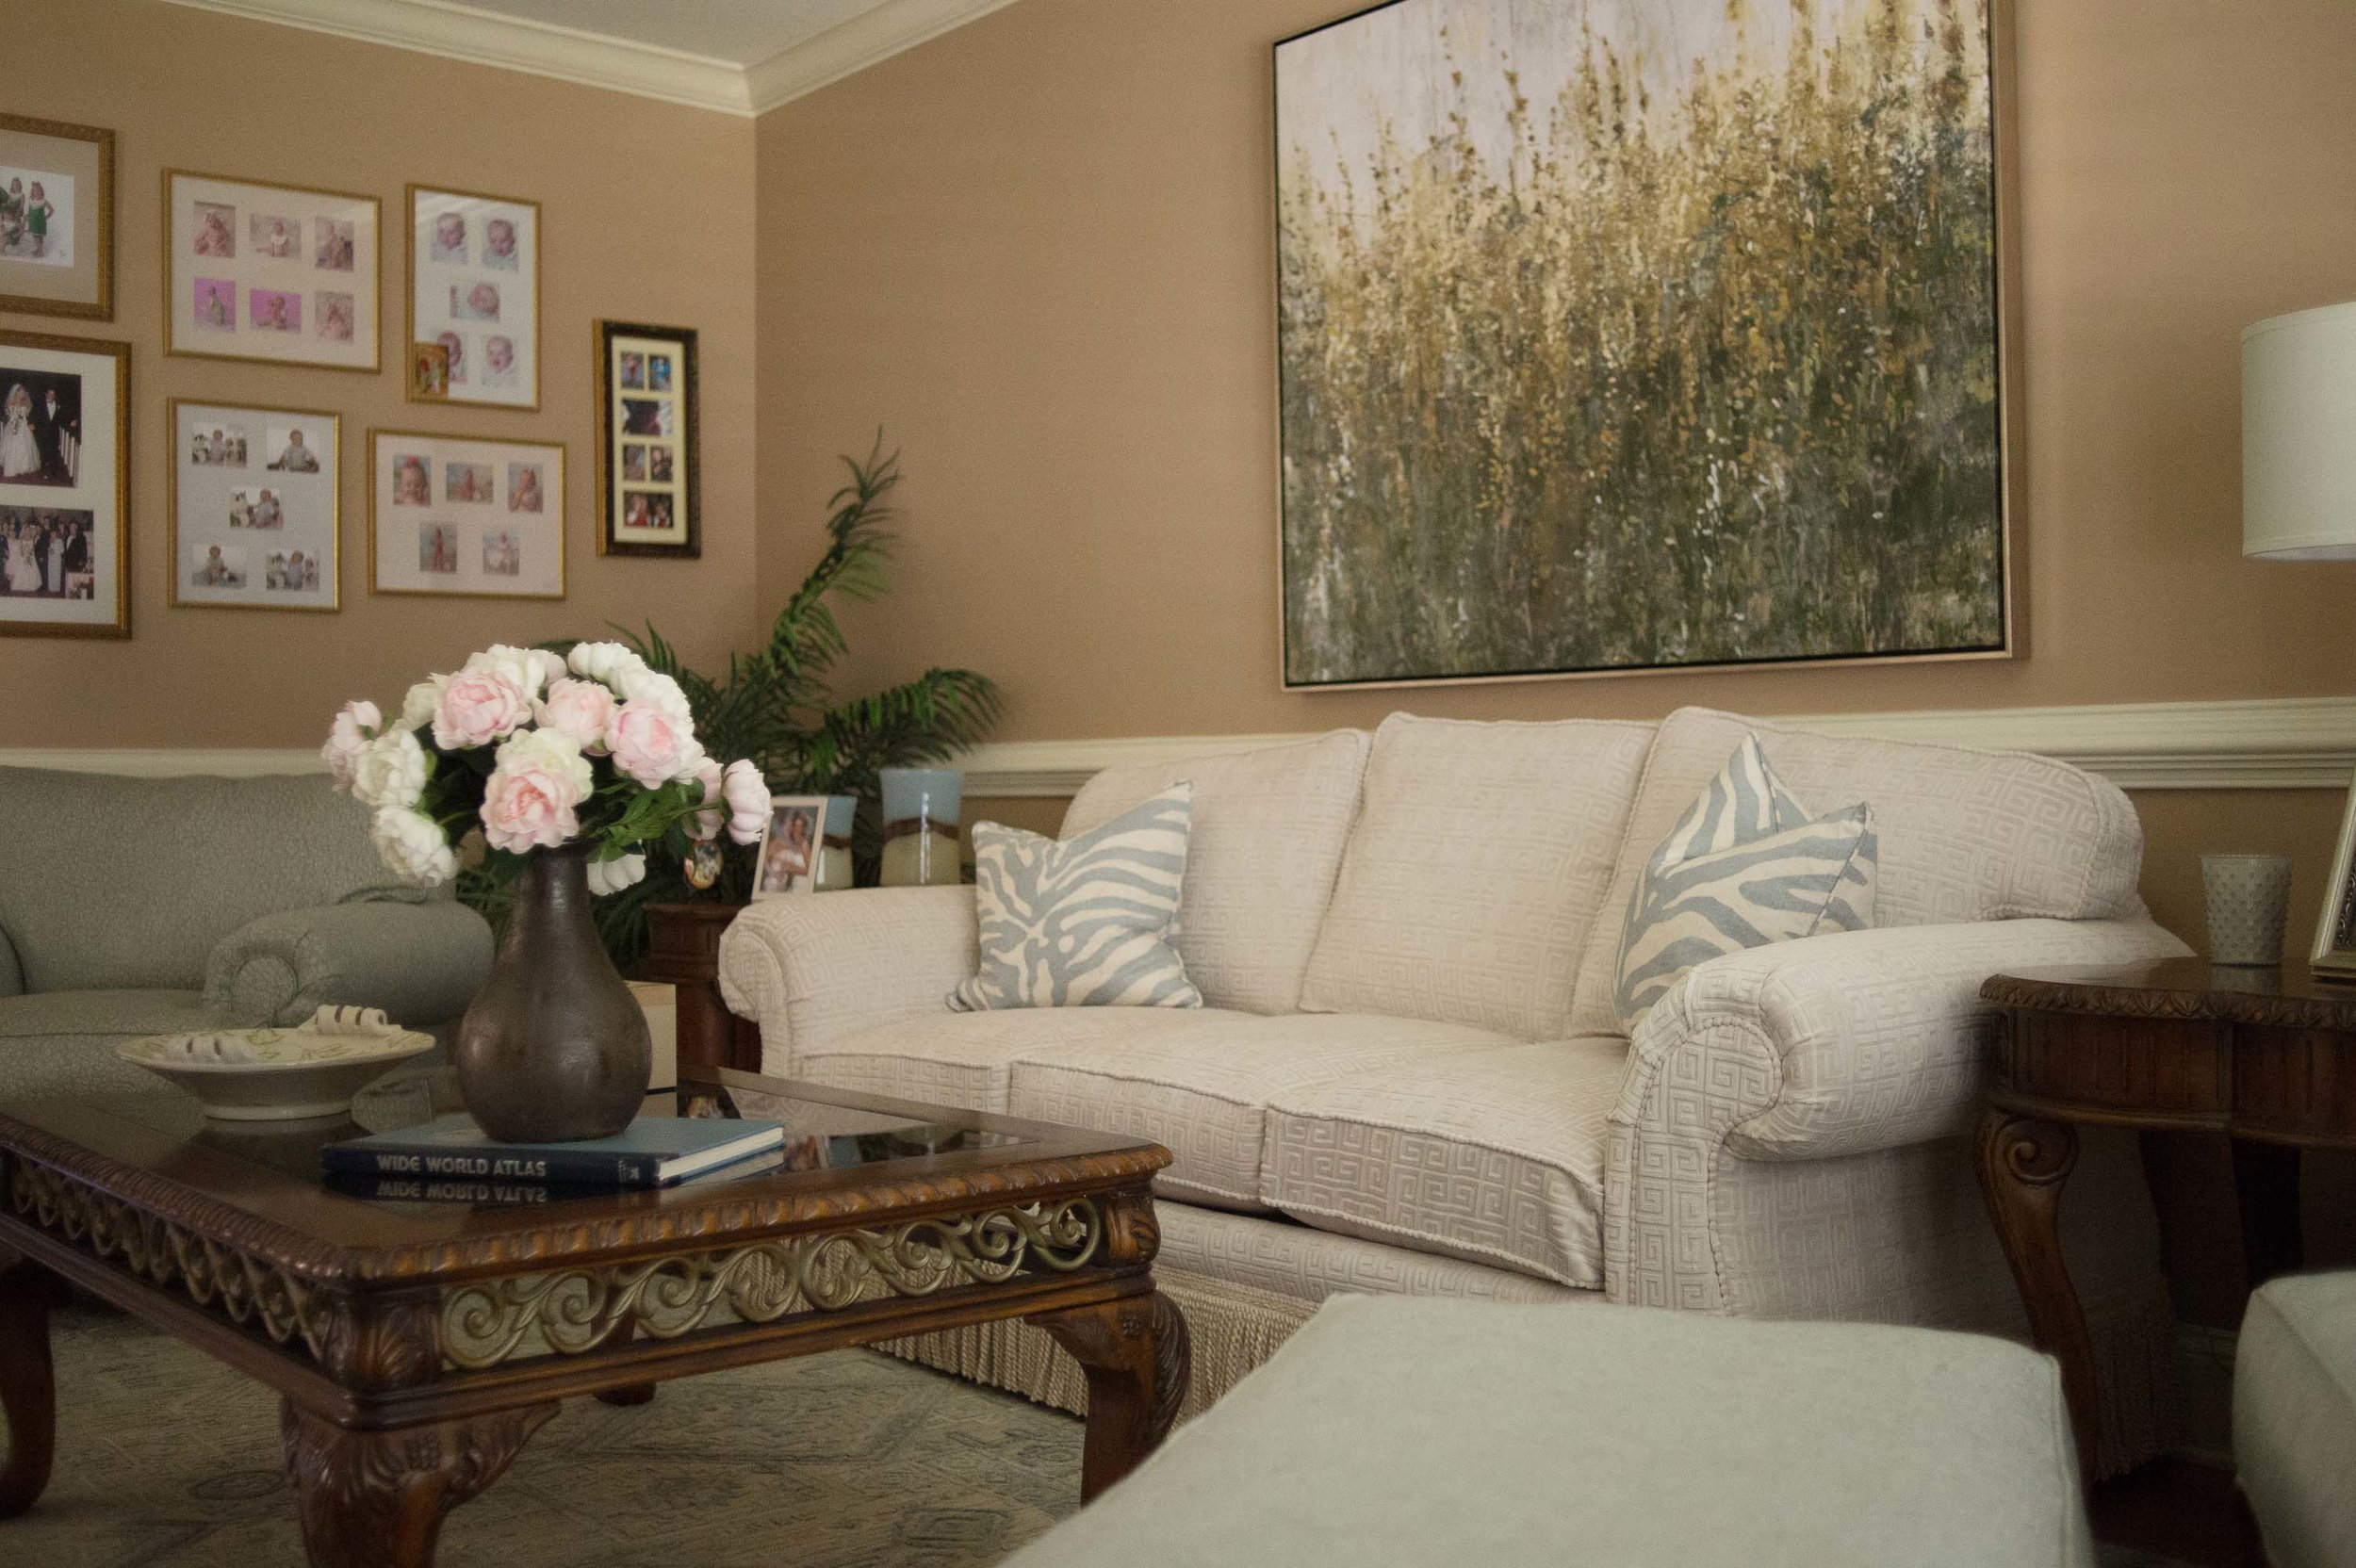 Living room with sofa, wooden center table and family pictures frames on the wall